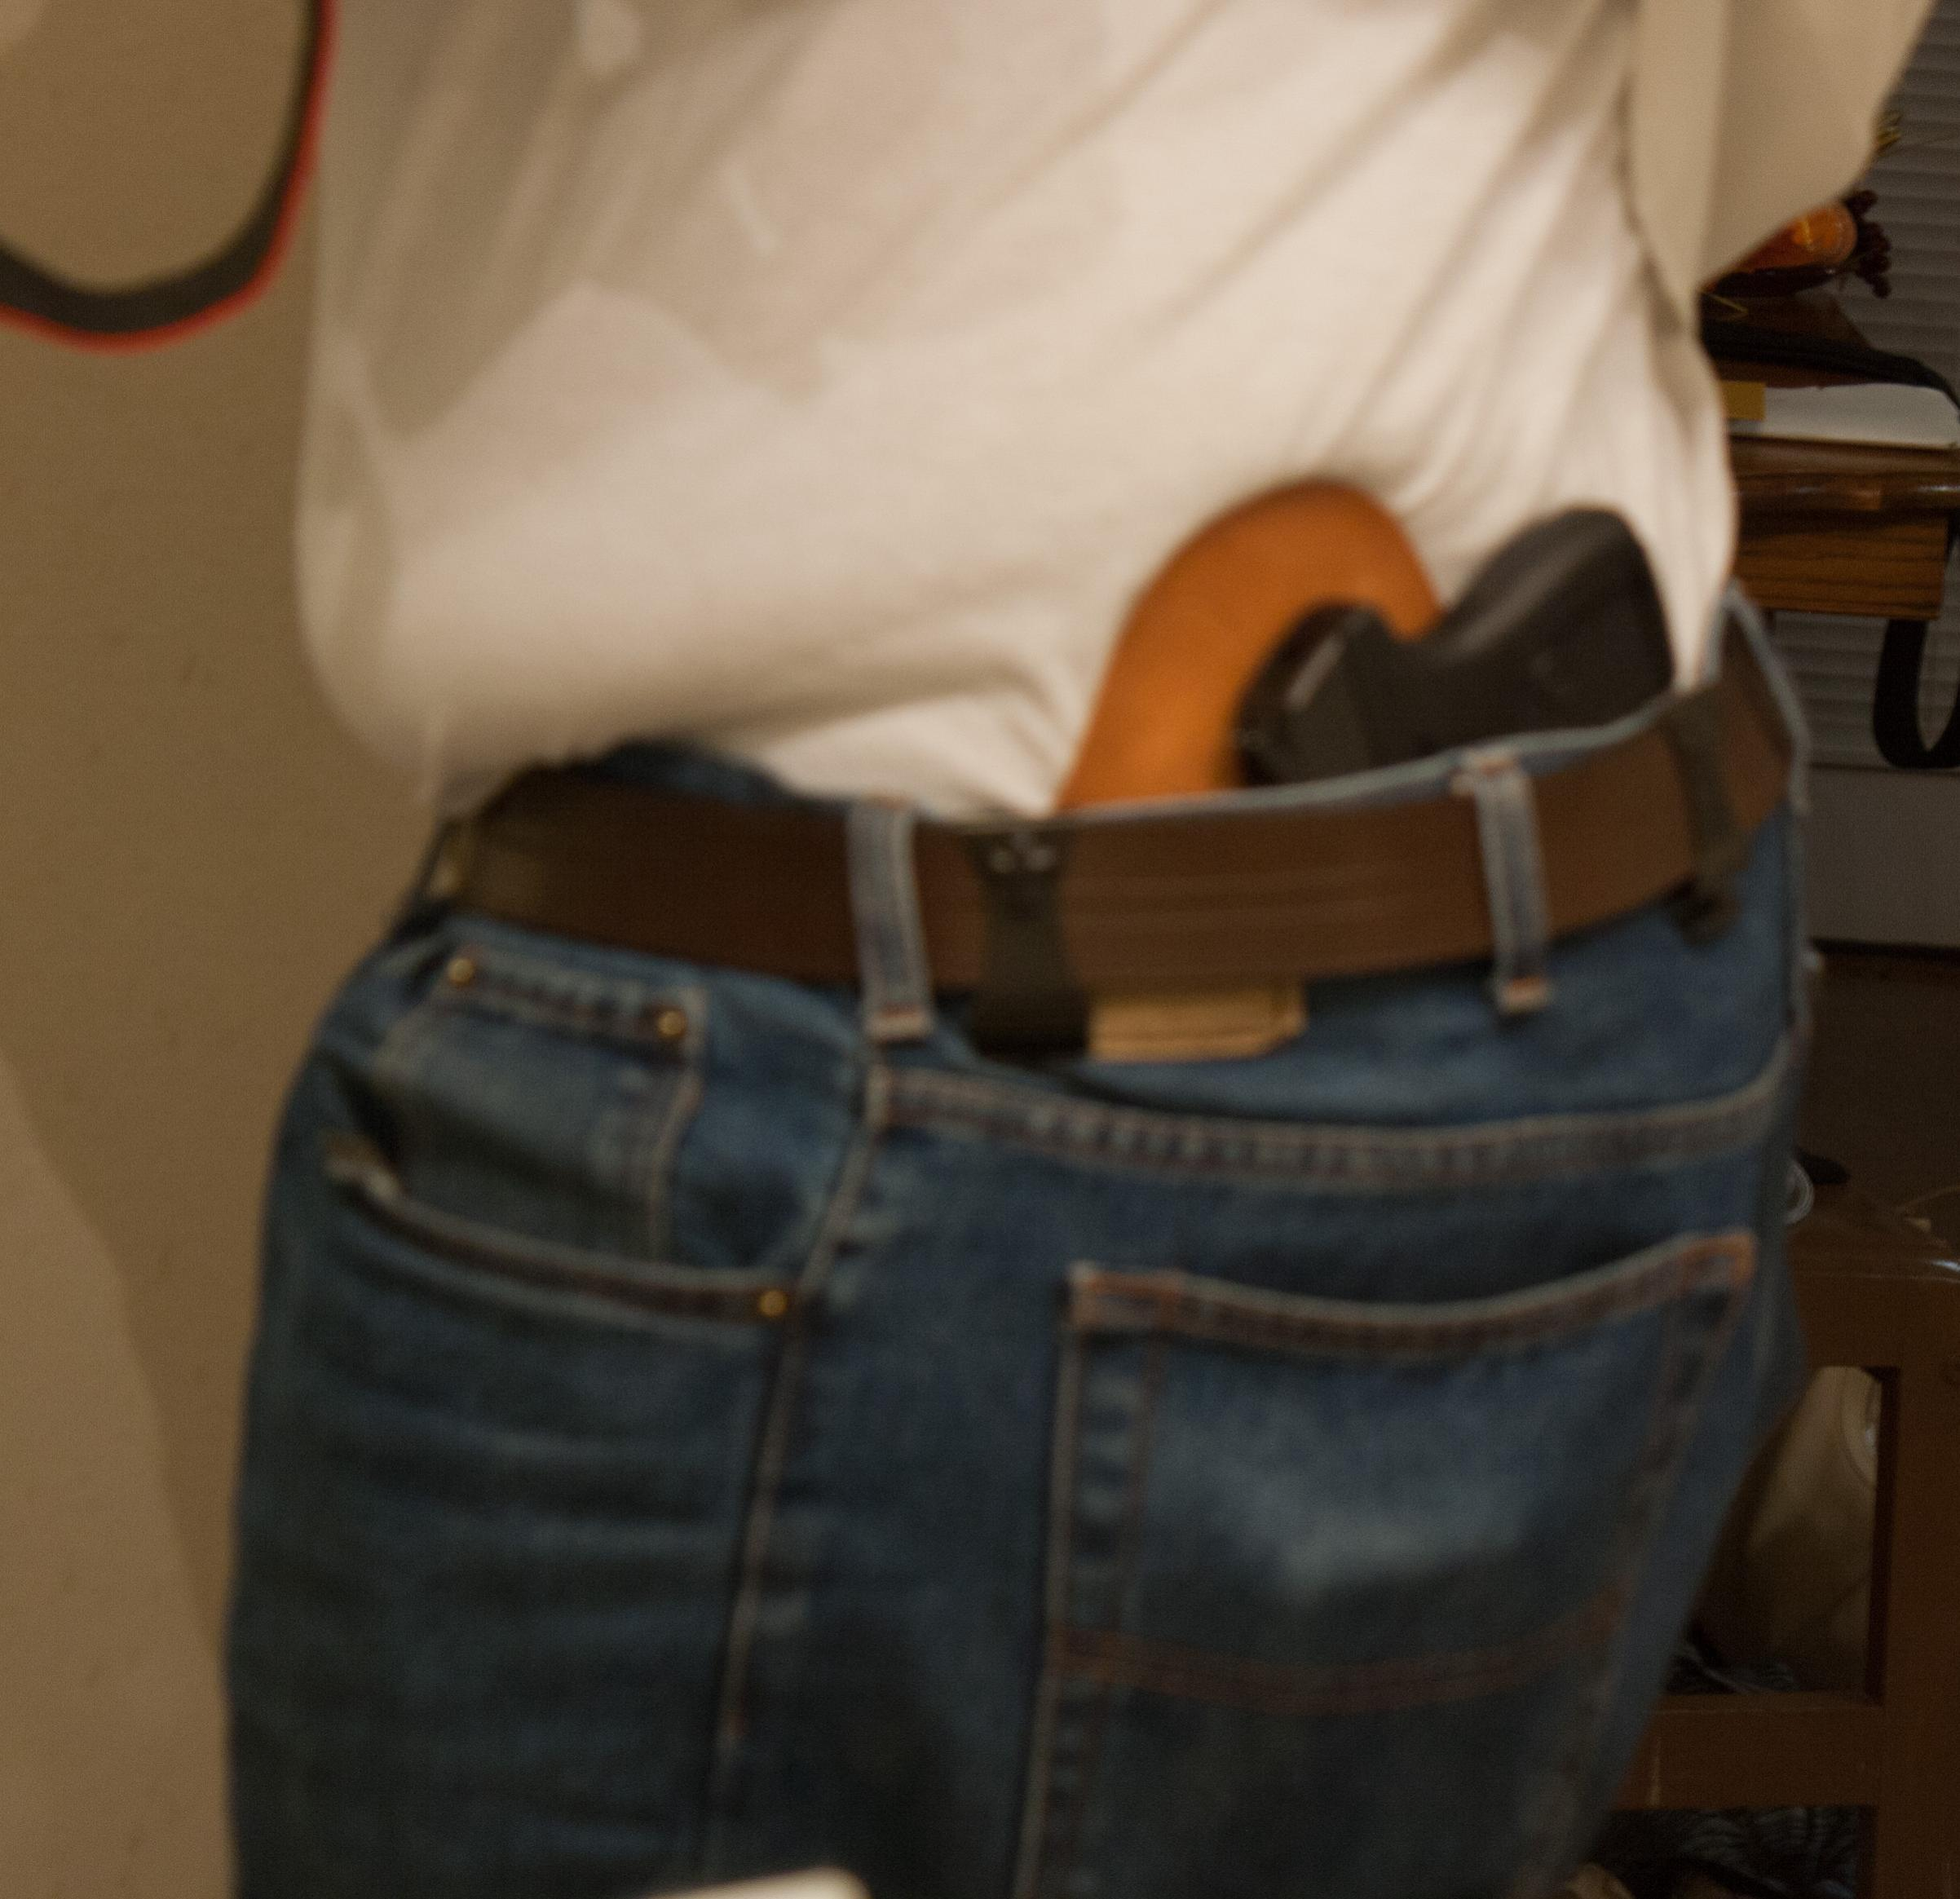 Let's See Your Pic's - How You Carry Concealed.-img_0131.jpg